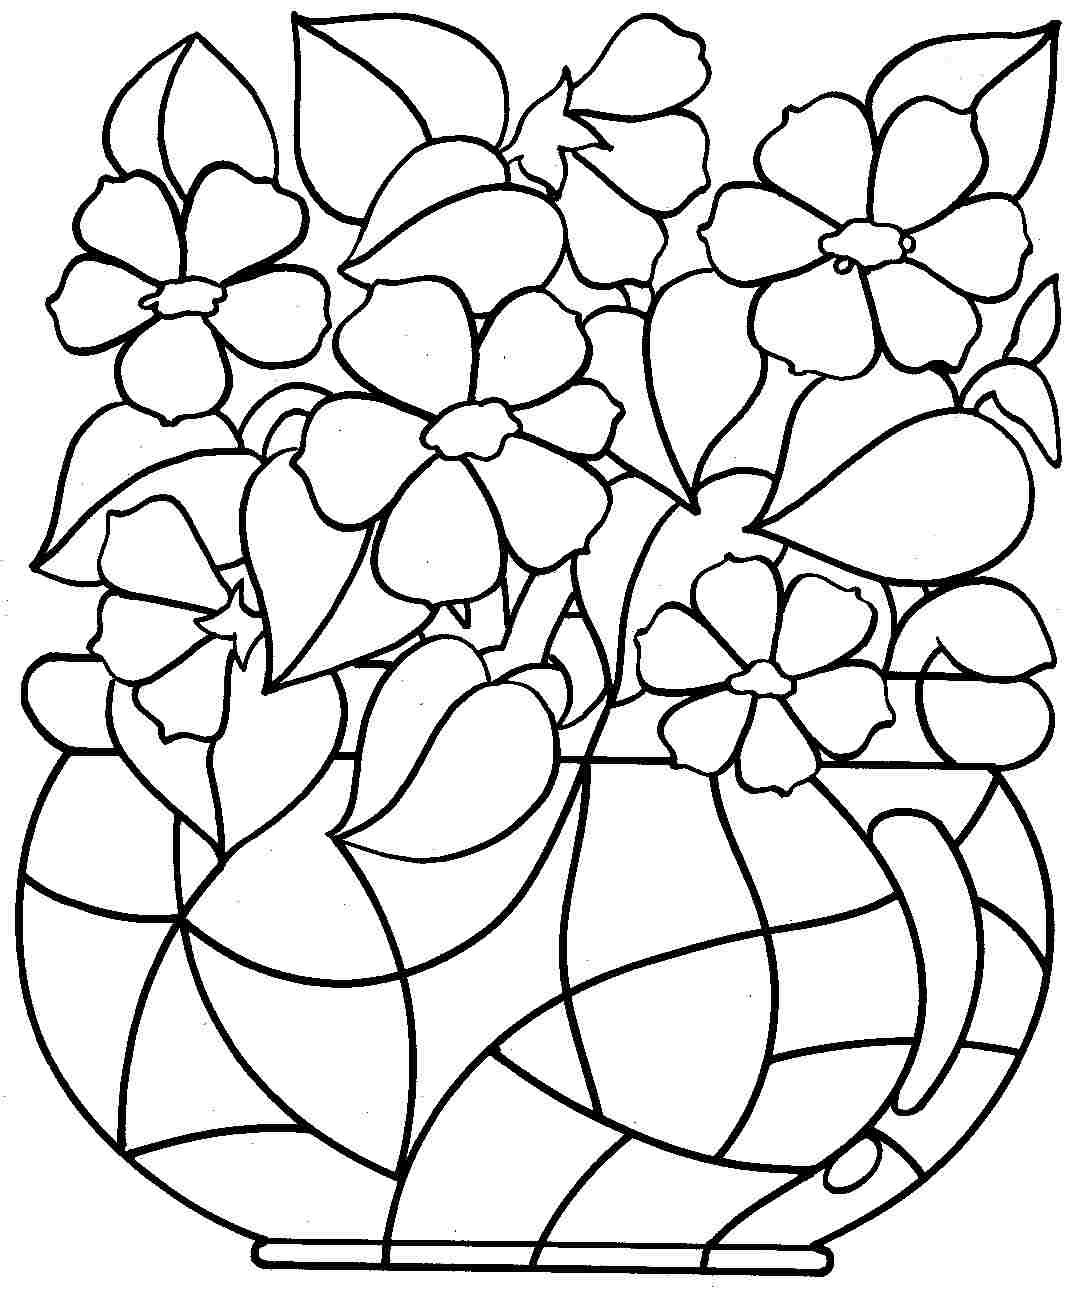 Downloadable Coloring Pages - Free Printable Coloring Pages Flowers for Kids